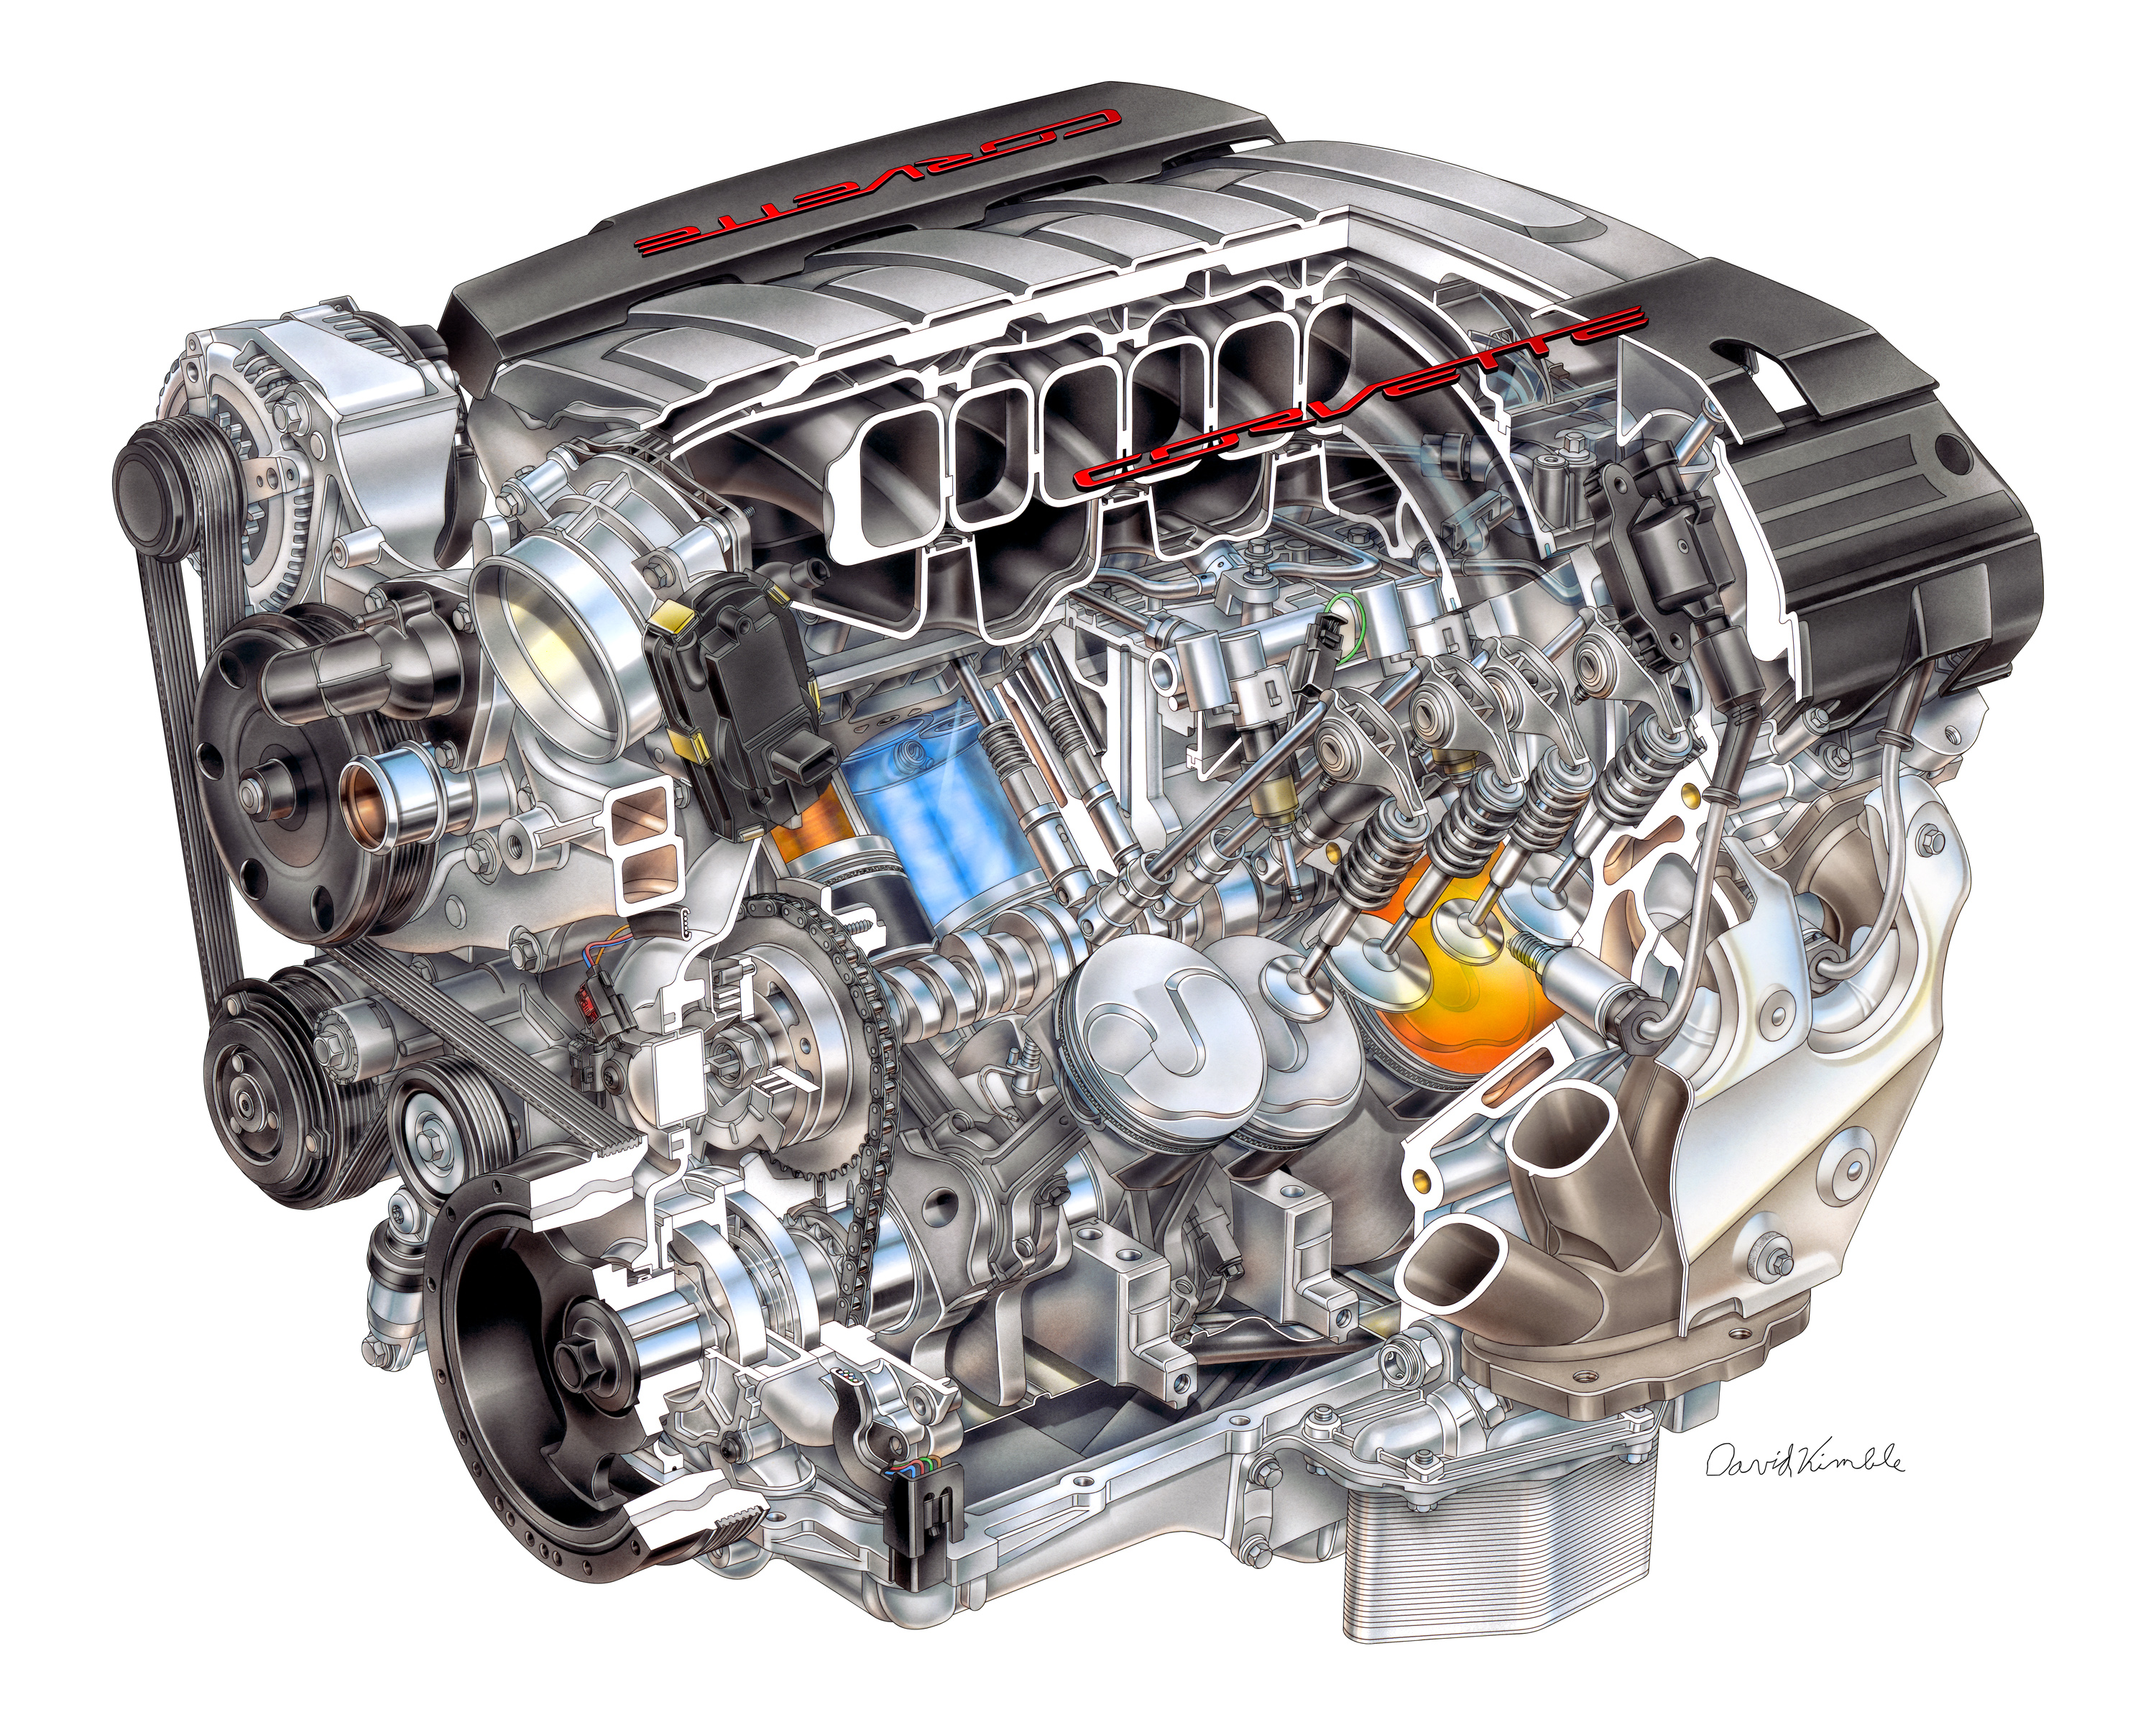 new era in small block performance launches gen 5